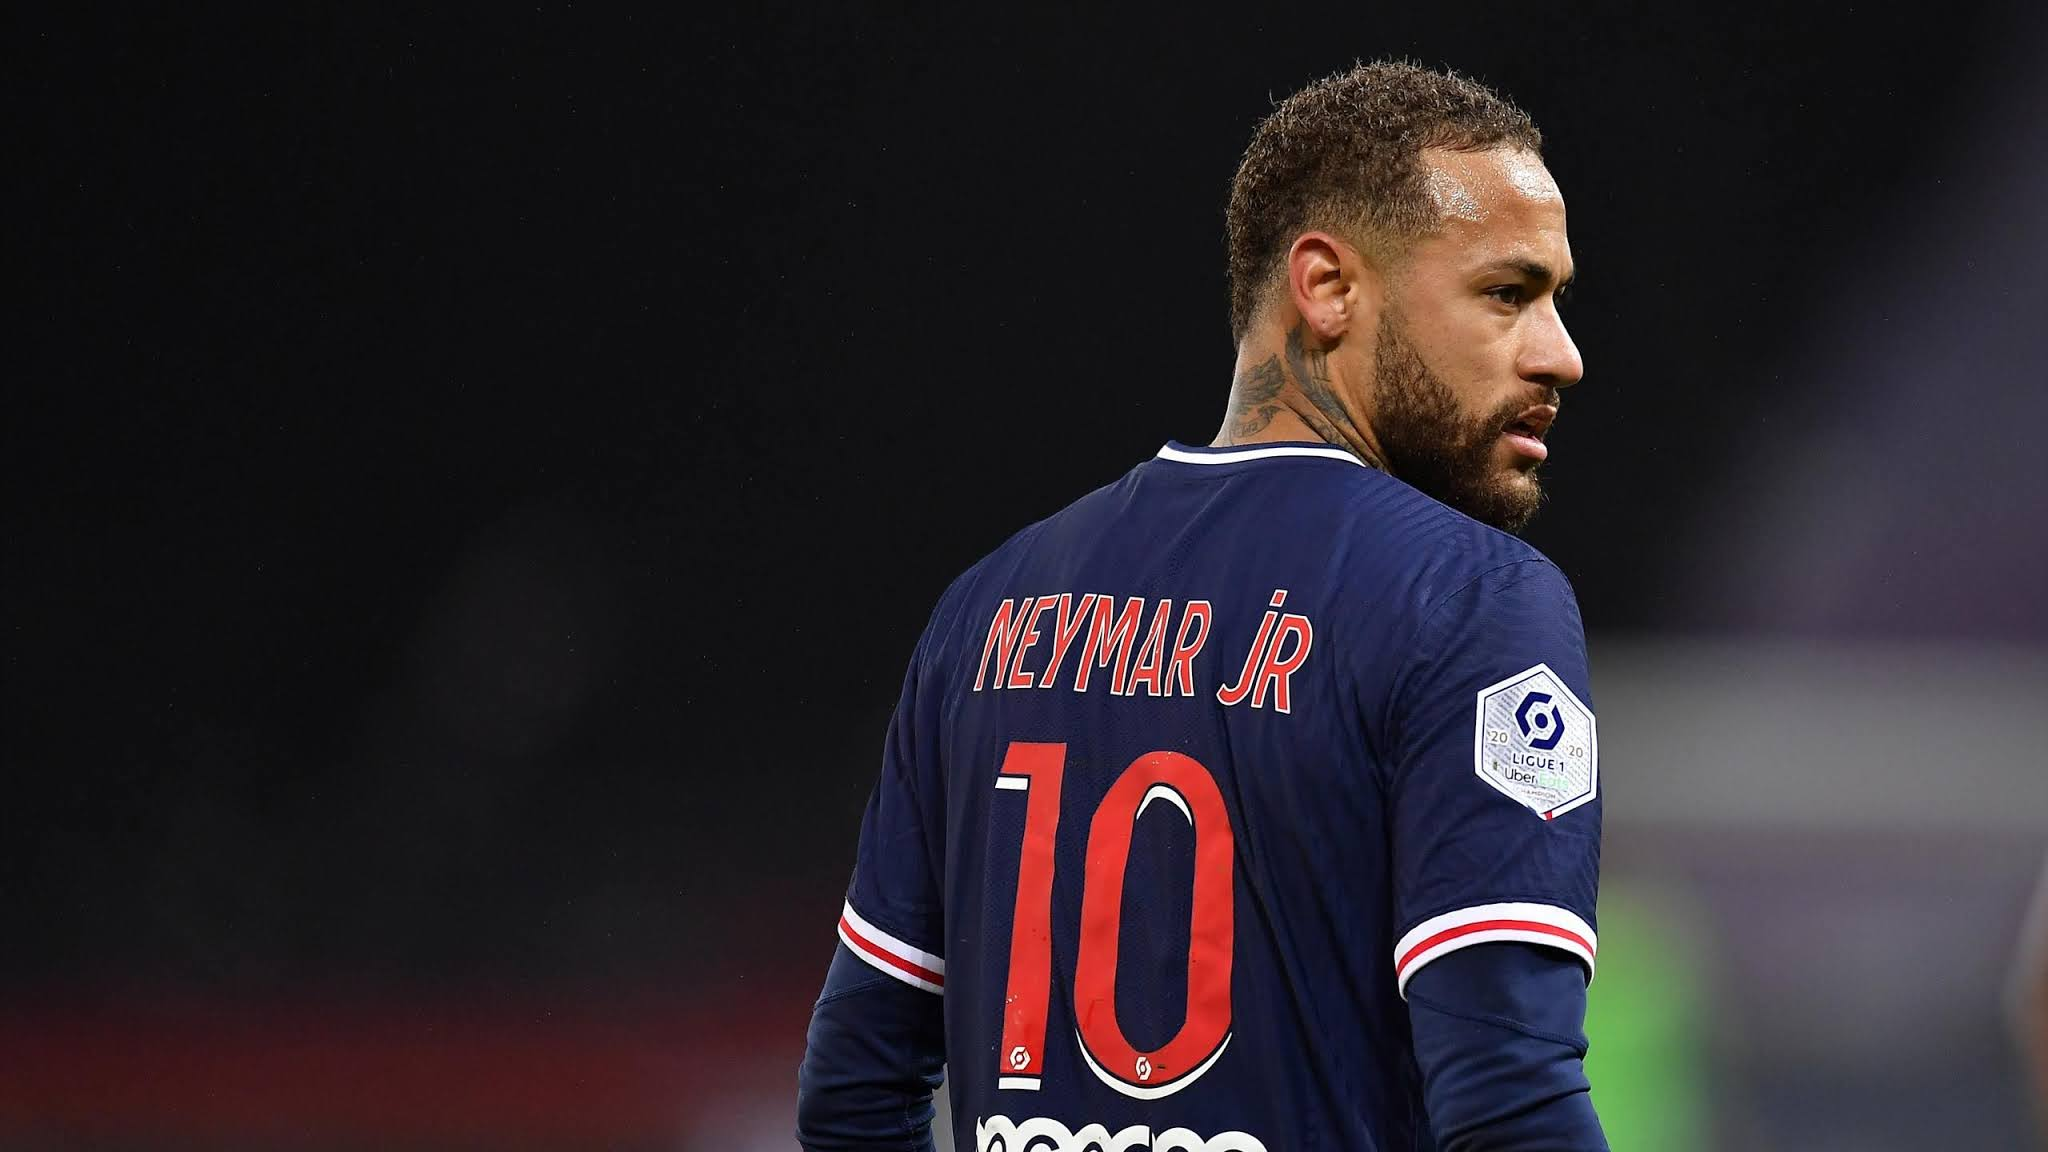 Neymar Jr's PSG will go toe-to-toe with Lionel Messi's Barcelona in a mouth-watering contest as the UCL returns